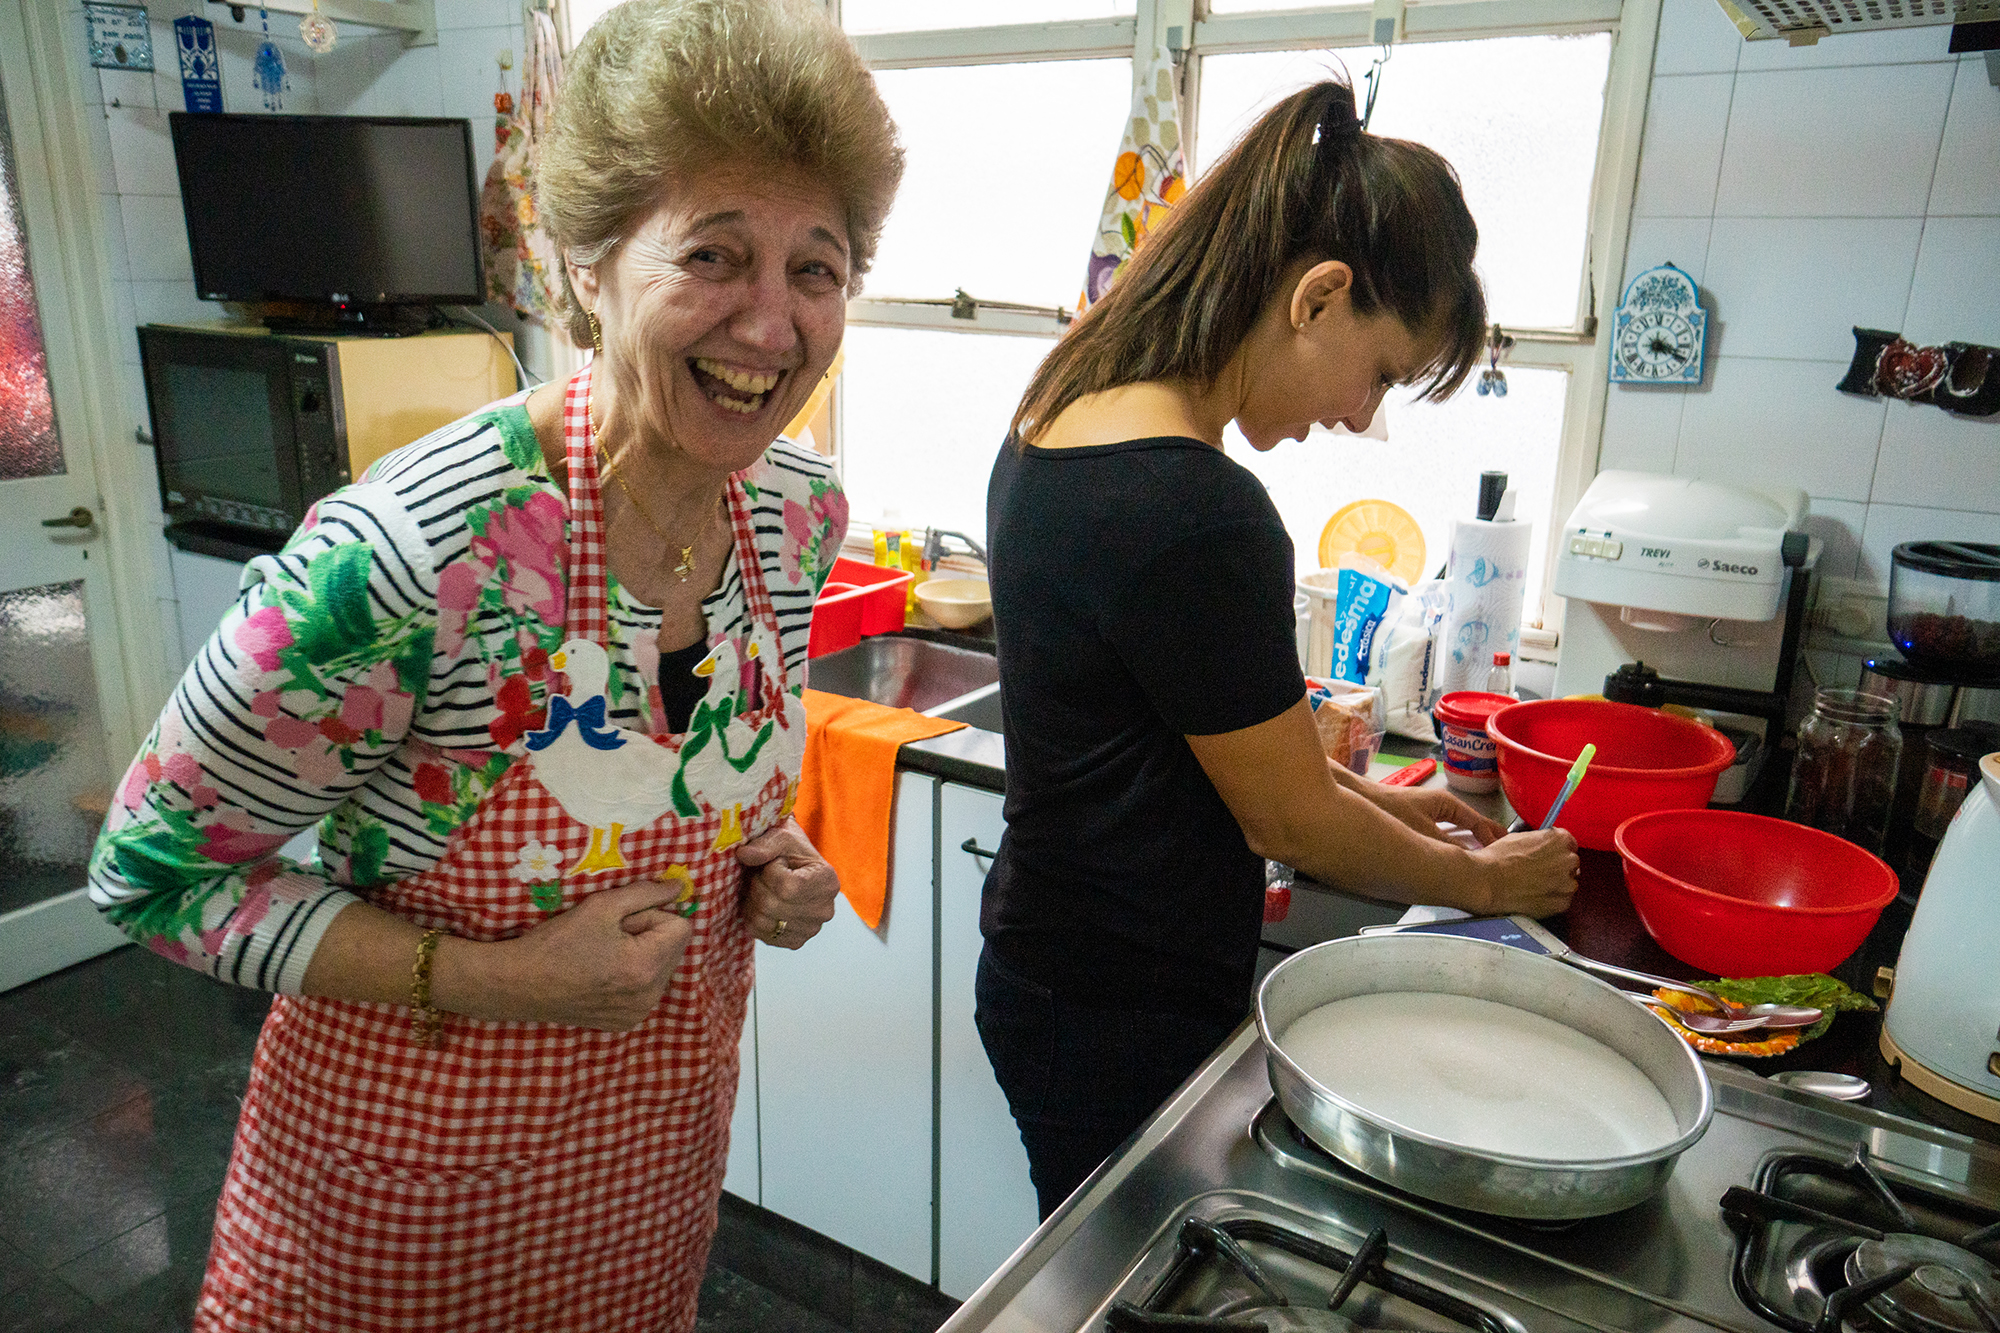 An older and a younger woman cooking together in a kitchen